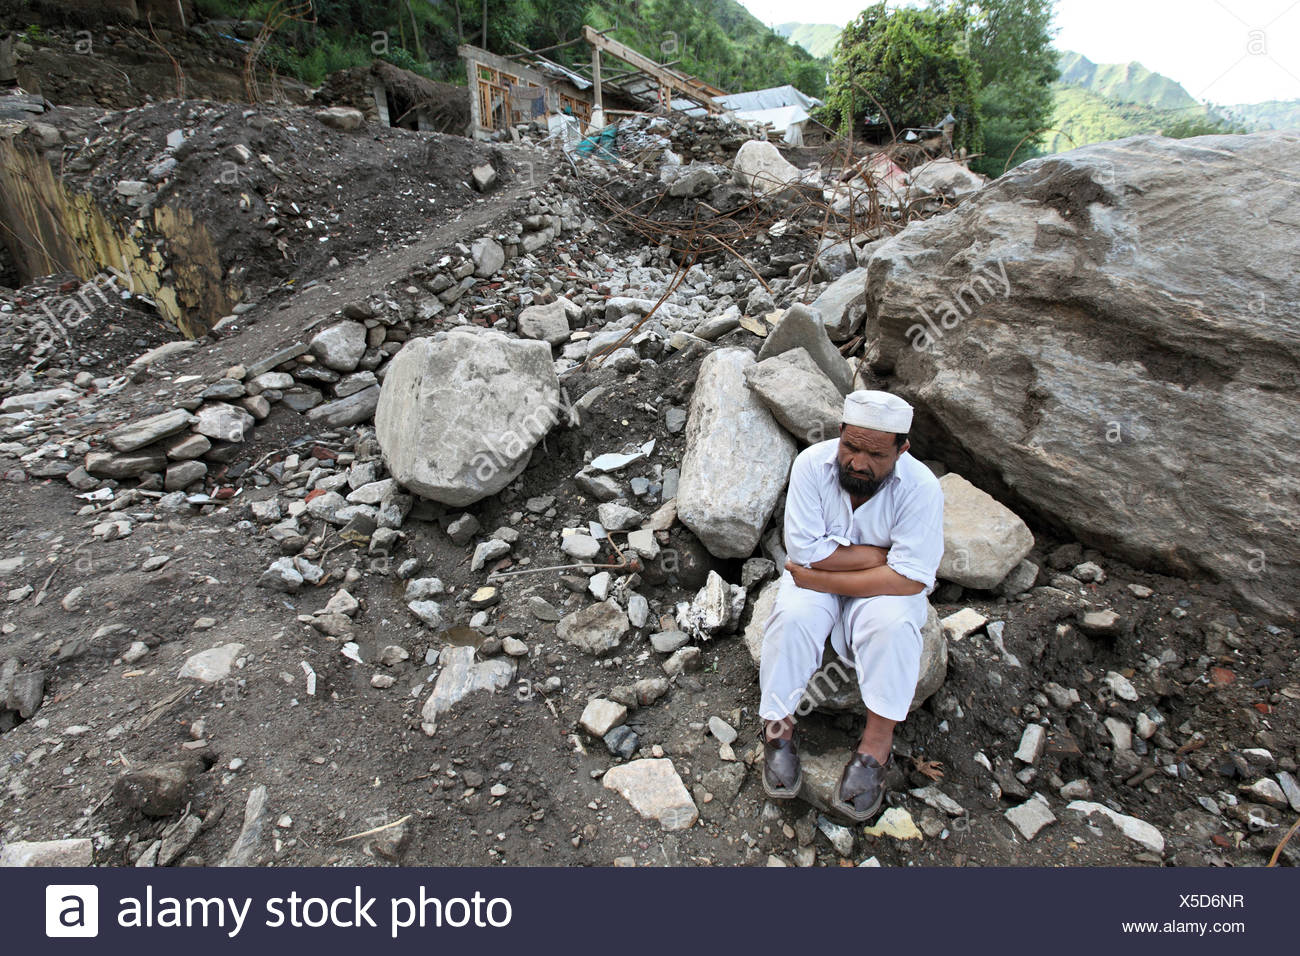 A man in front of the ruins of his house after the flood disaster, Kokarai, Pakistan - Stock Image